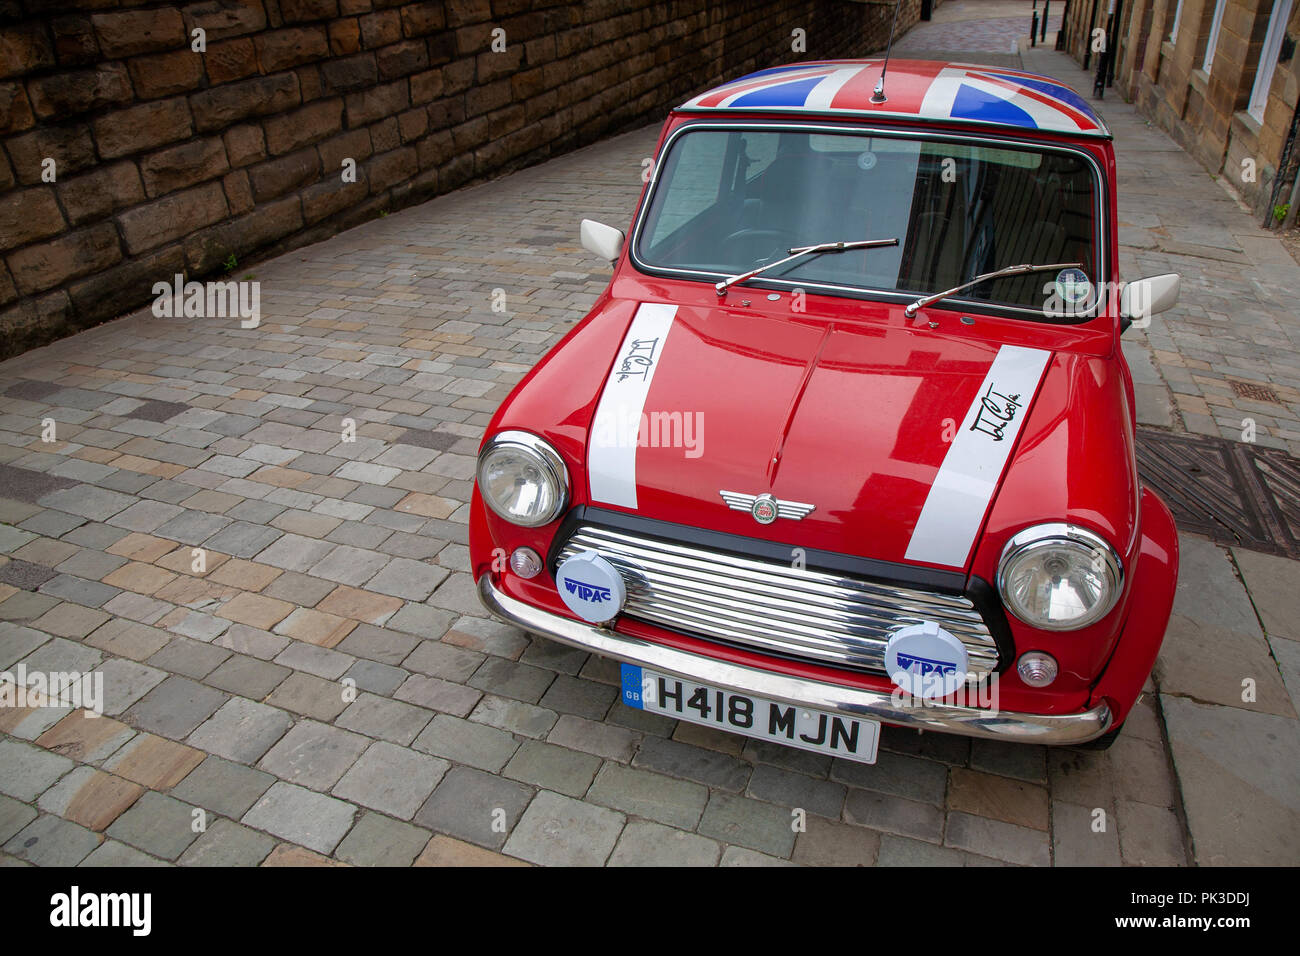 Union Jack On Mini Roof Stock Photos Union Jack On Mini Roof Stock